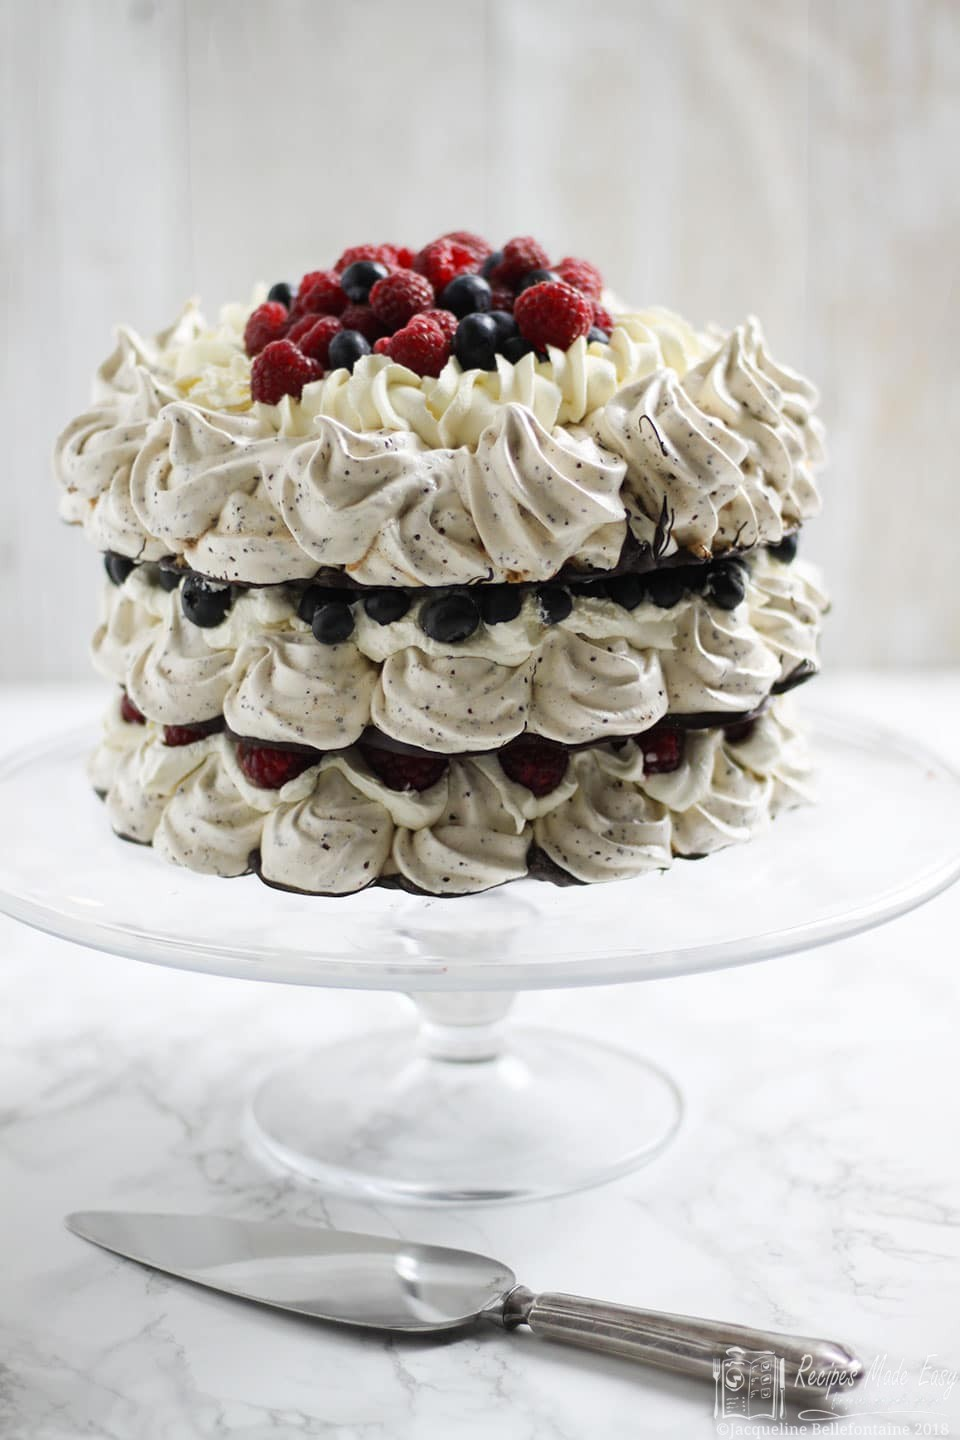 Recipes Made Easy - Chocolate Meringue Crown- layers of crisp chocolate meringue filled with fruit and cream